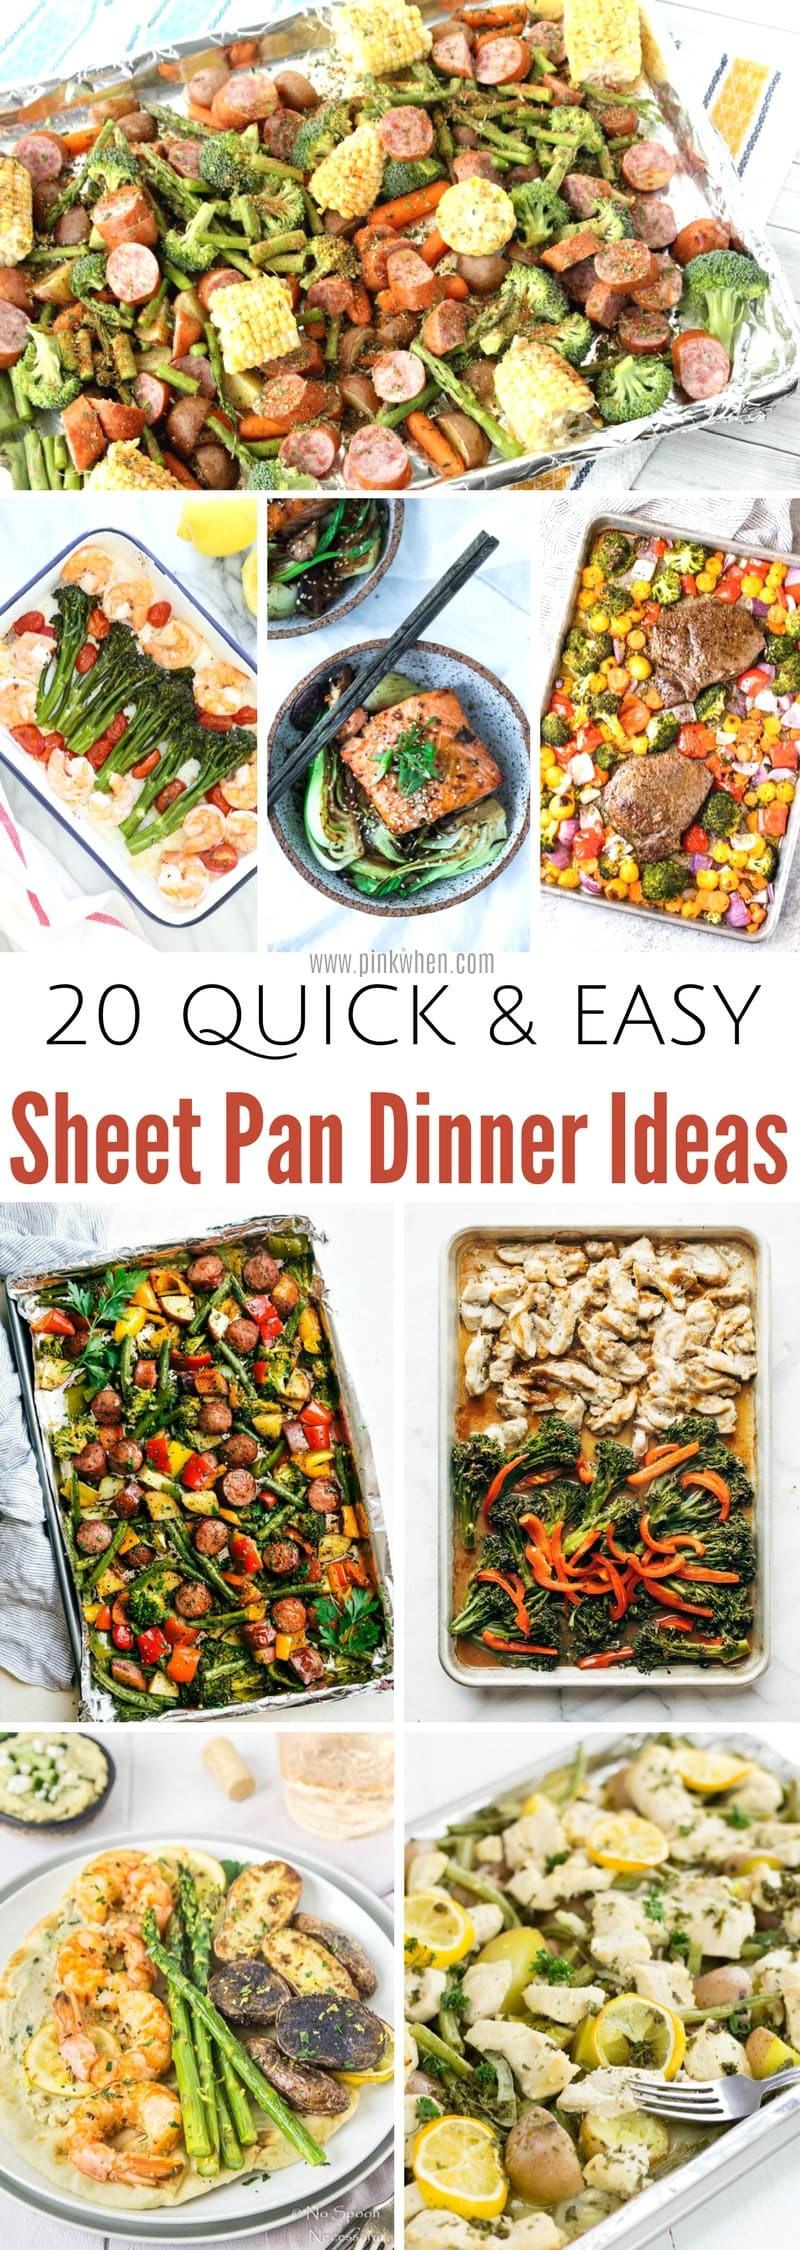 20 Quick and Easy Sheet Pan Dinner Ideas.